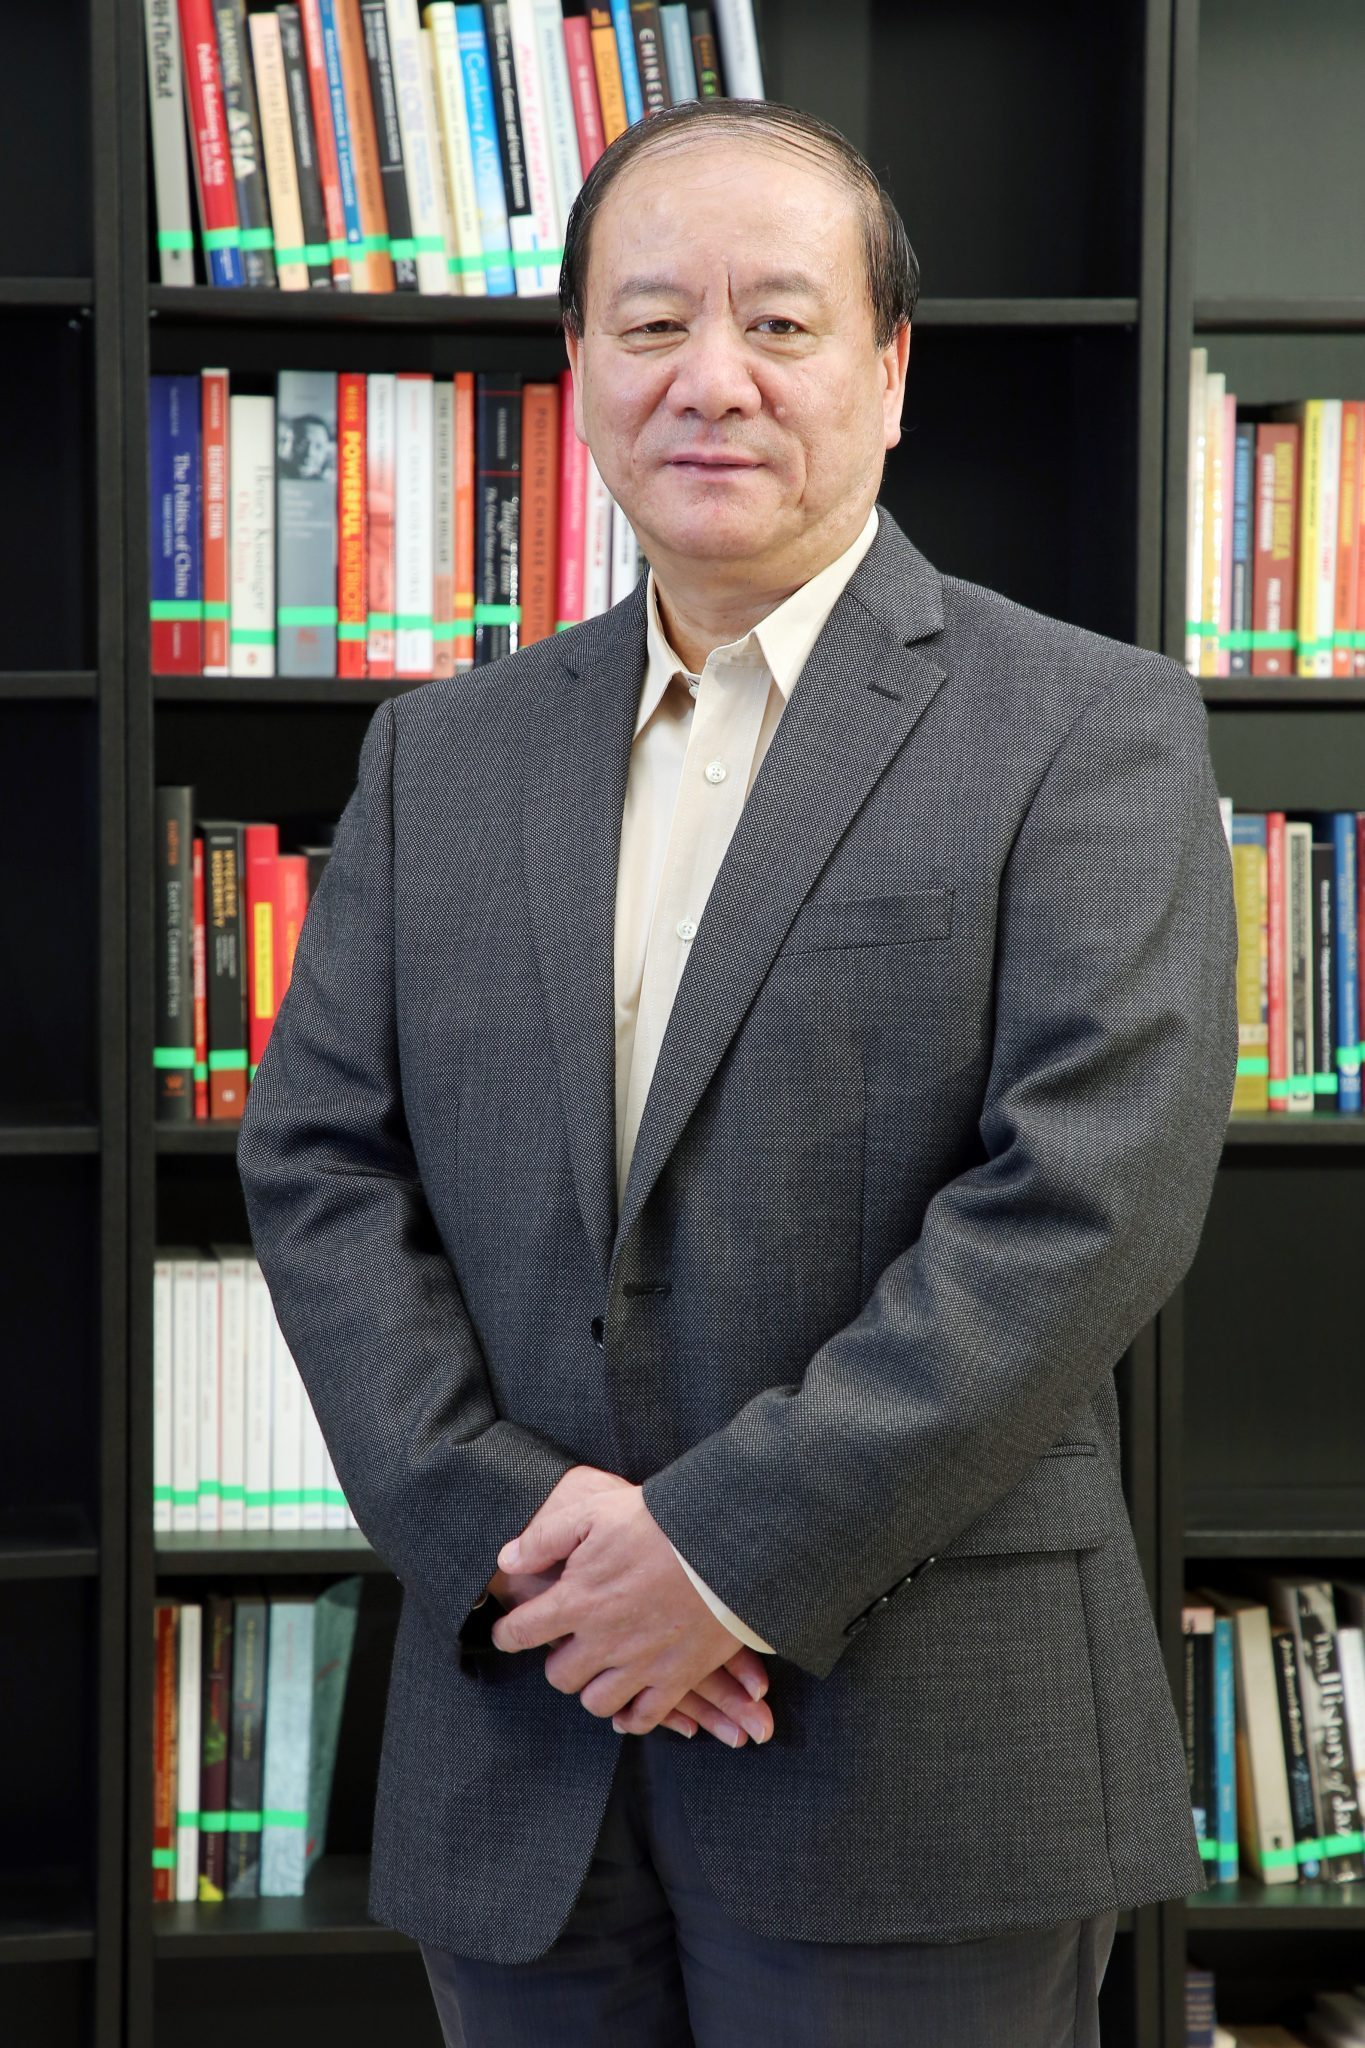 A journal edited by Prof Liu Jianhong has been ranked top by authoritative international rankings